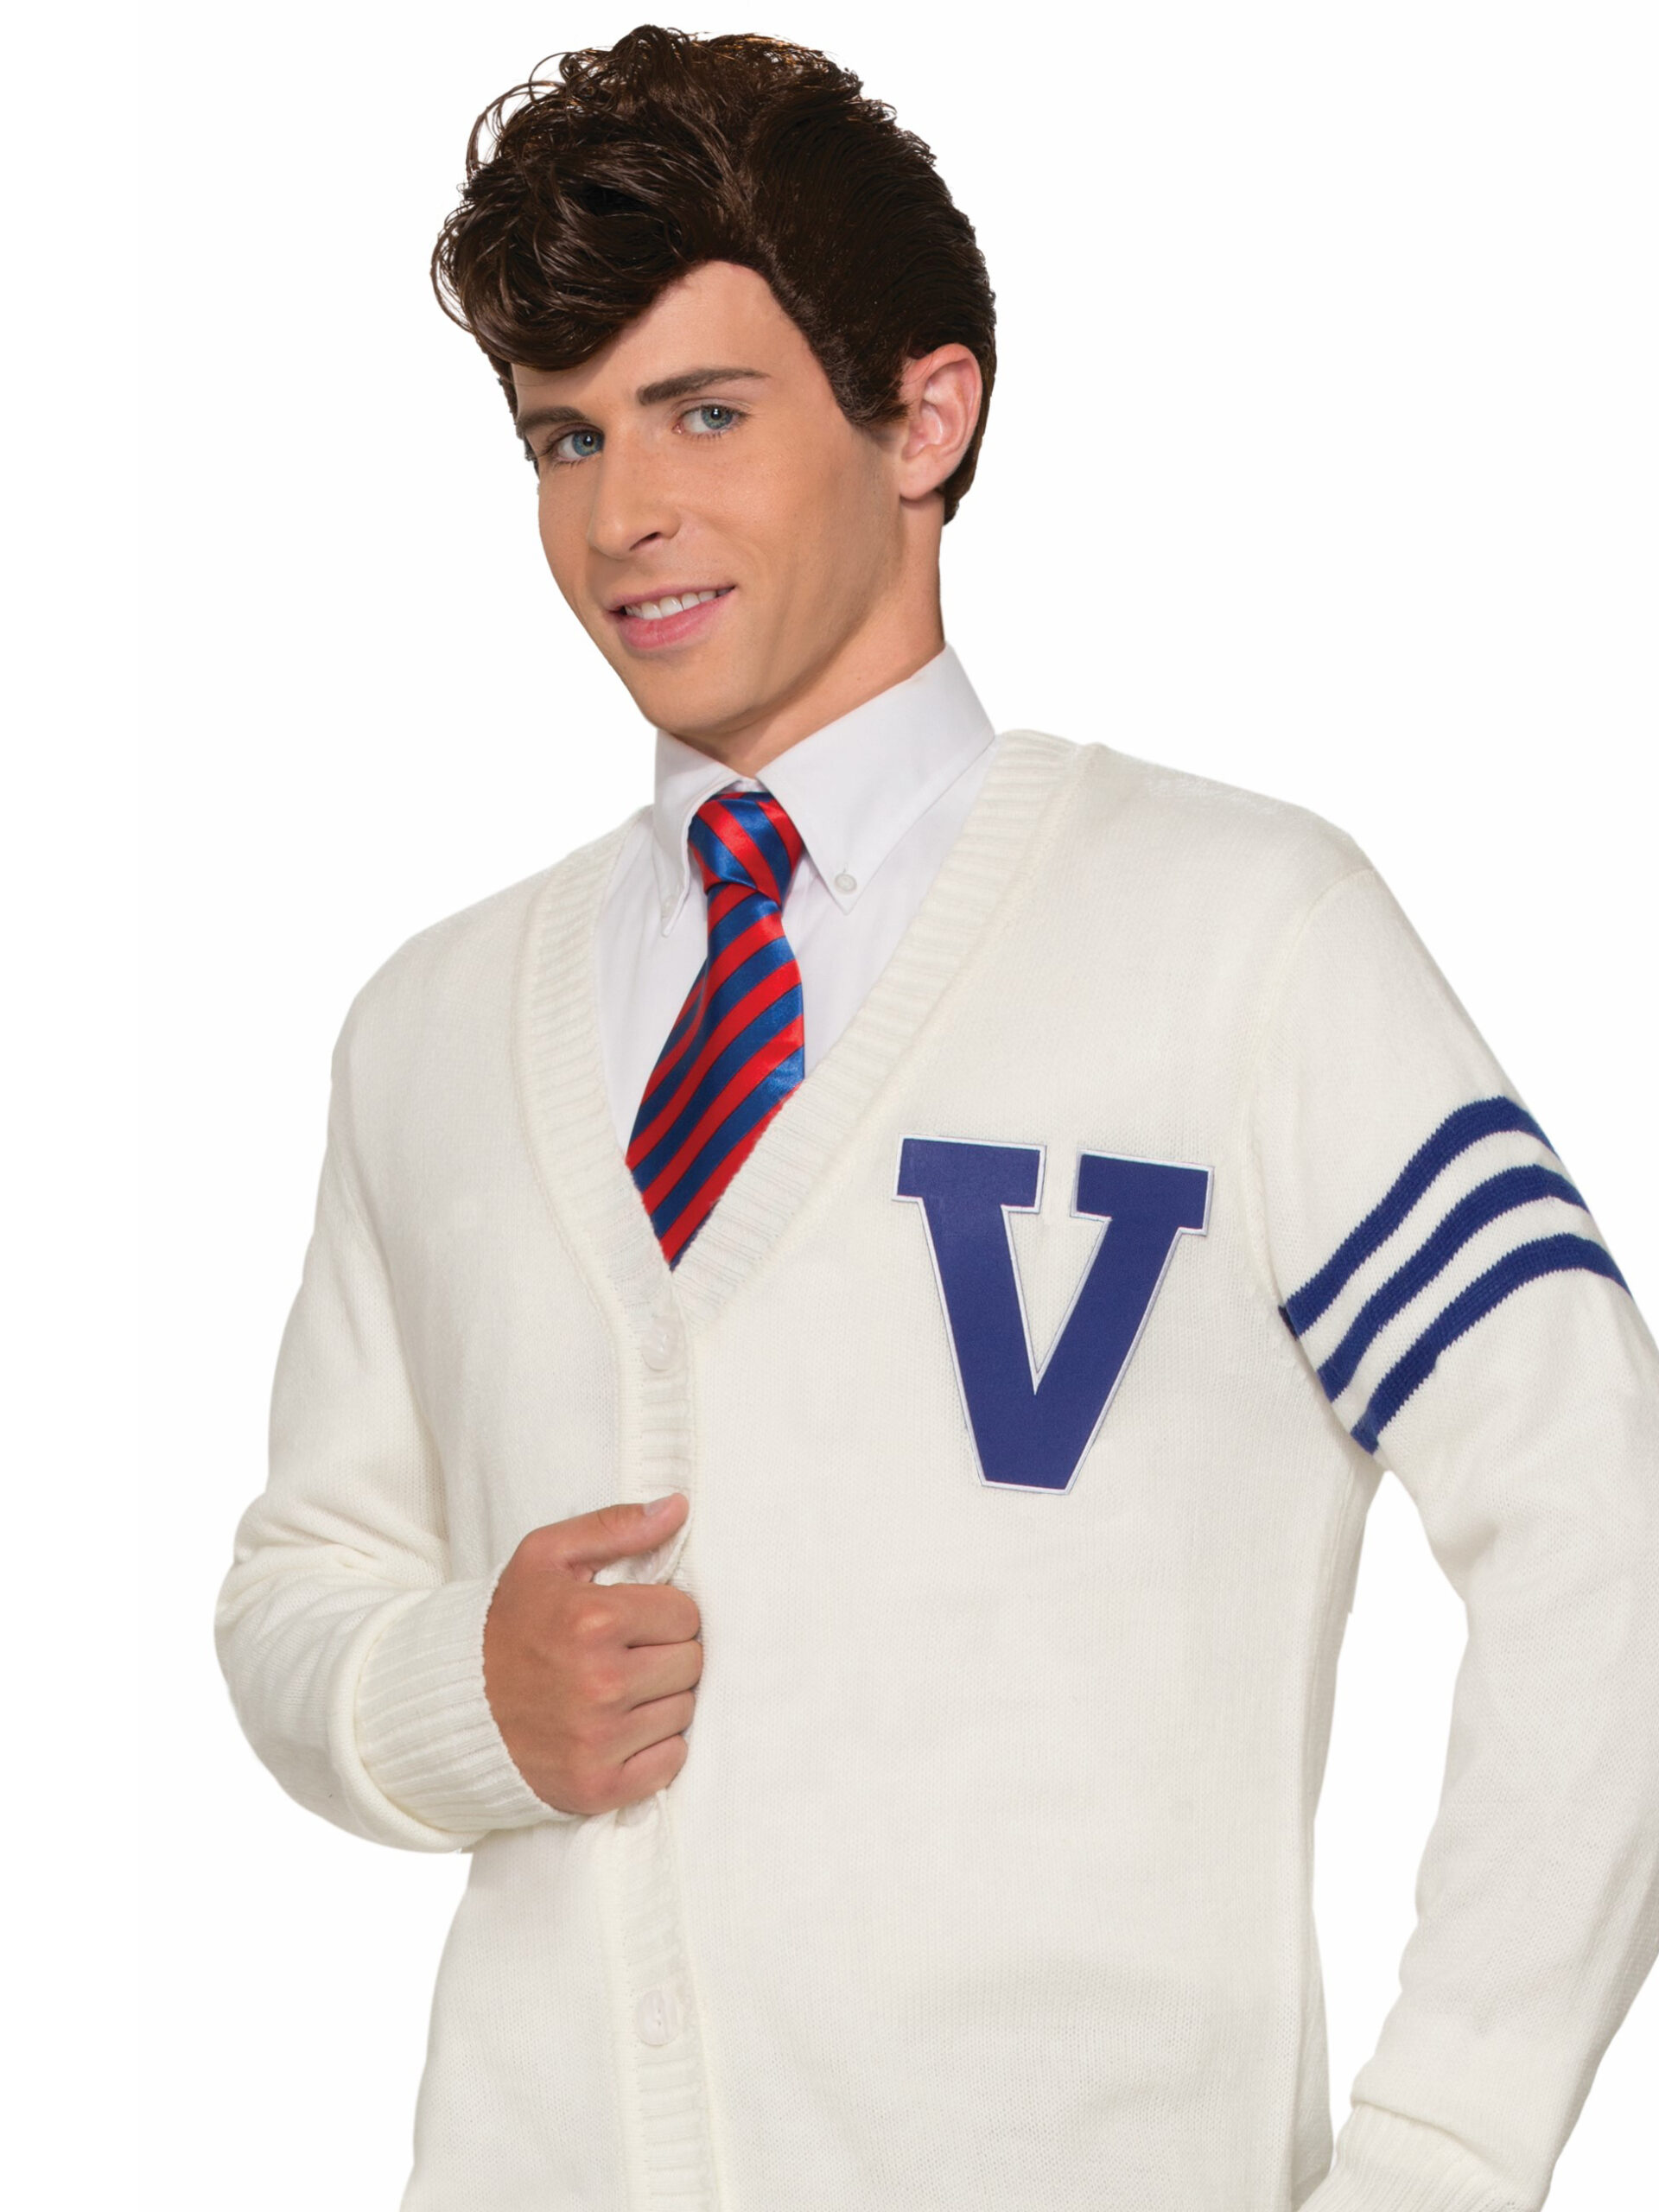 adult male 60s letter sweater and tie costume and wig